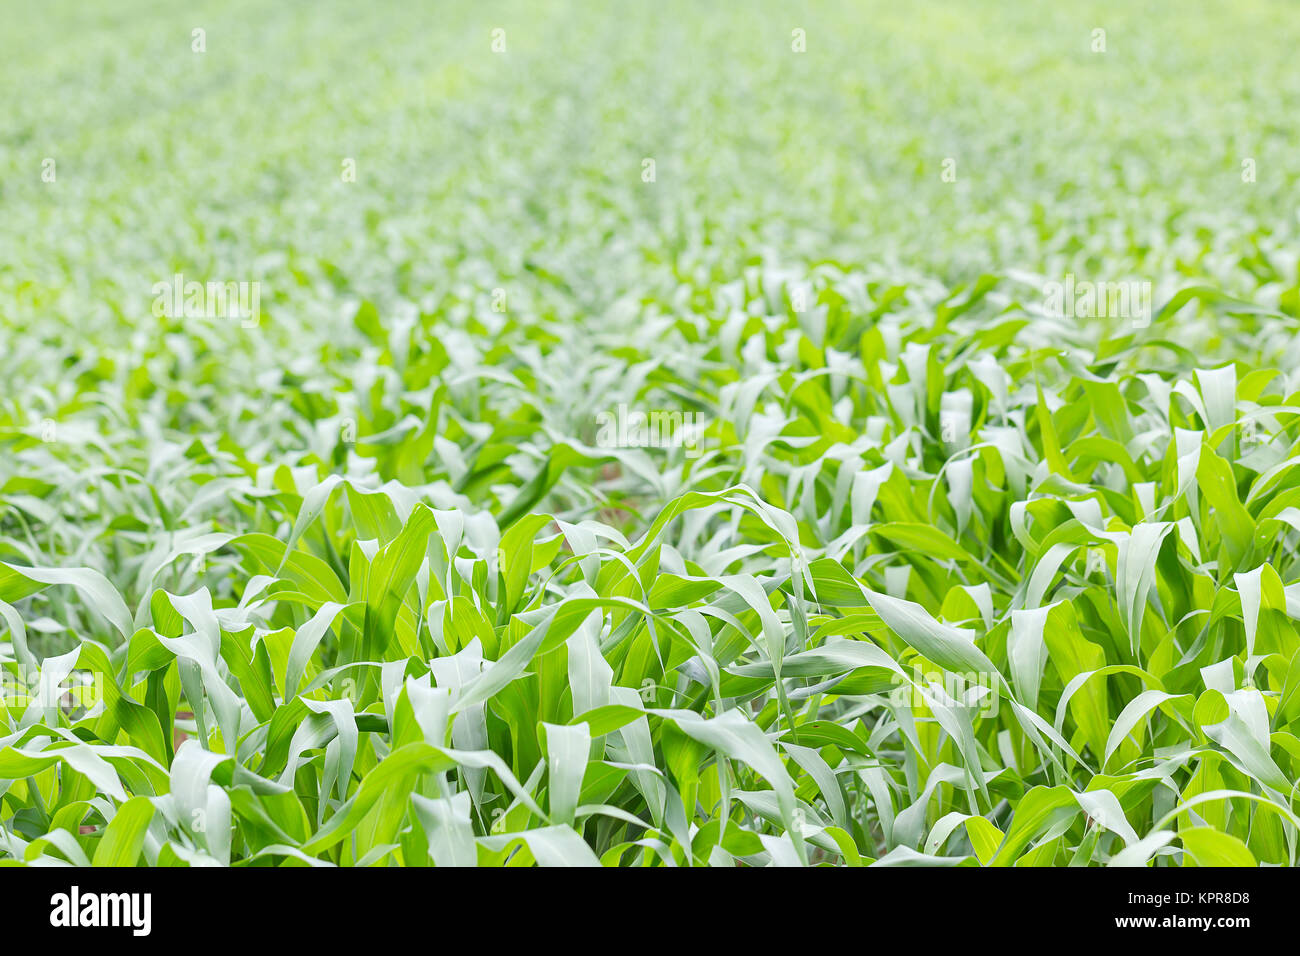 Close up Green grass field - Stock Image